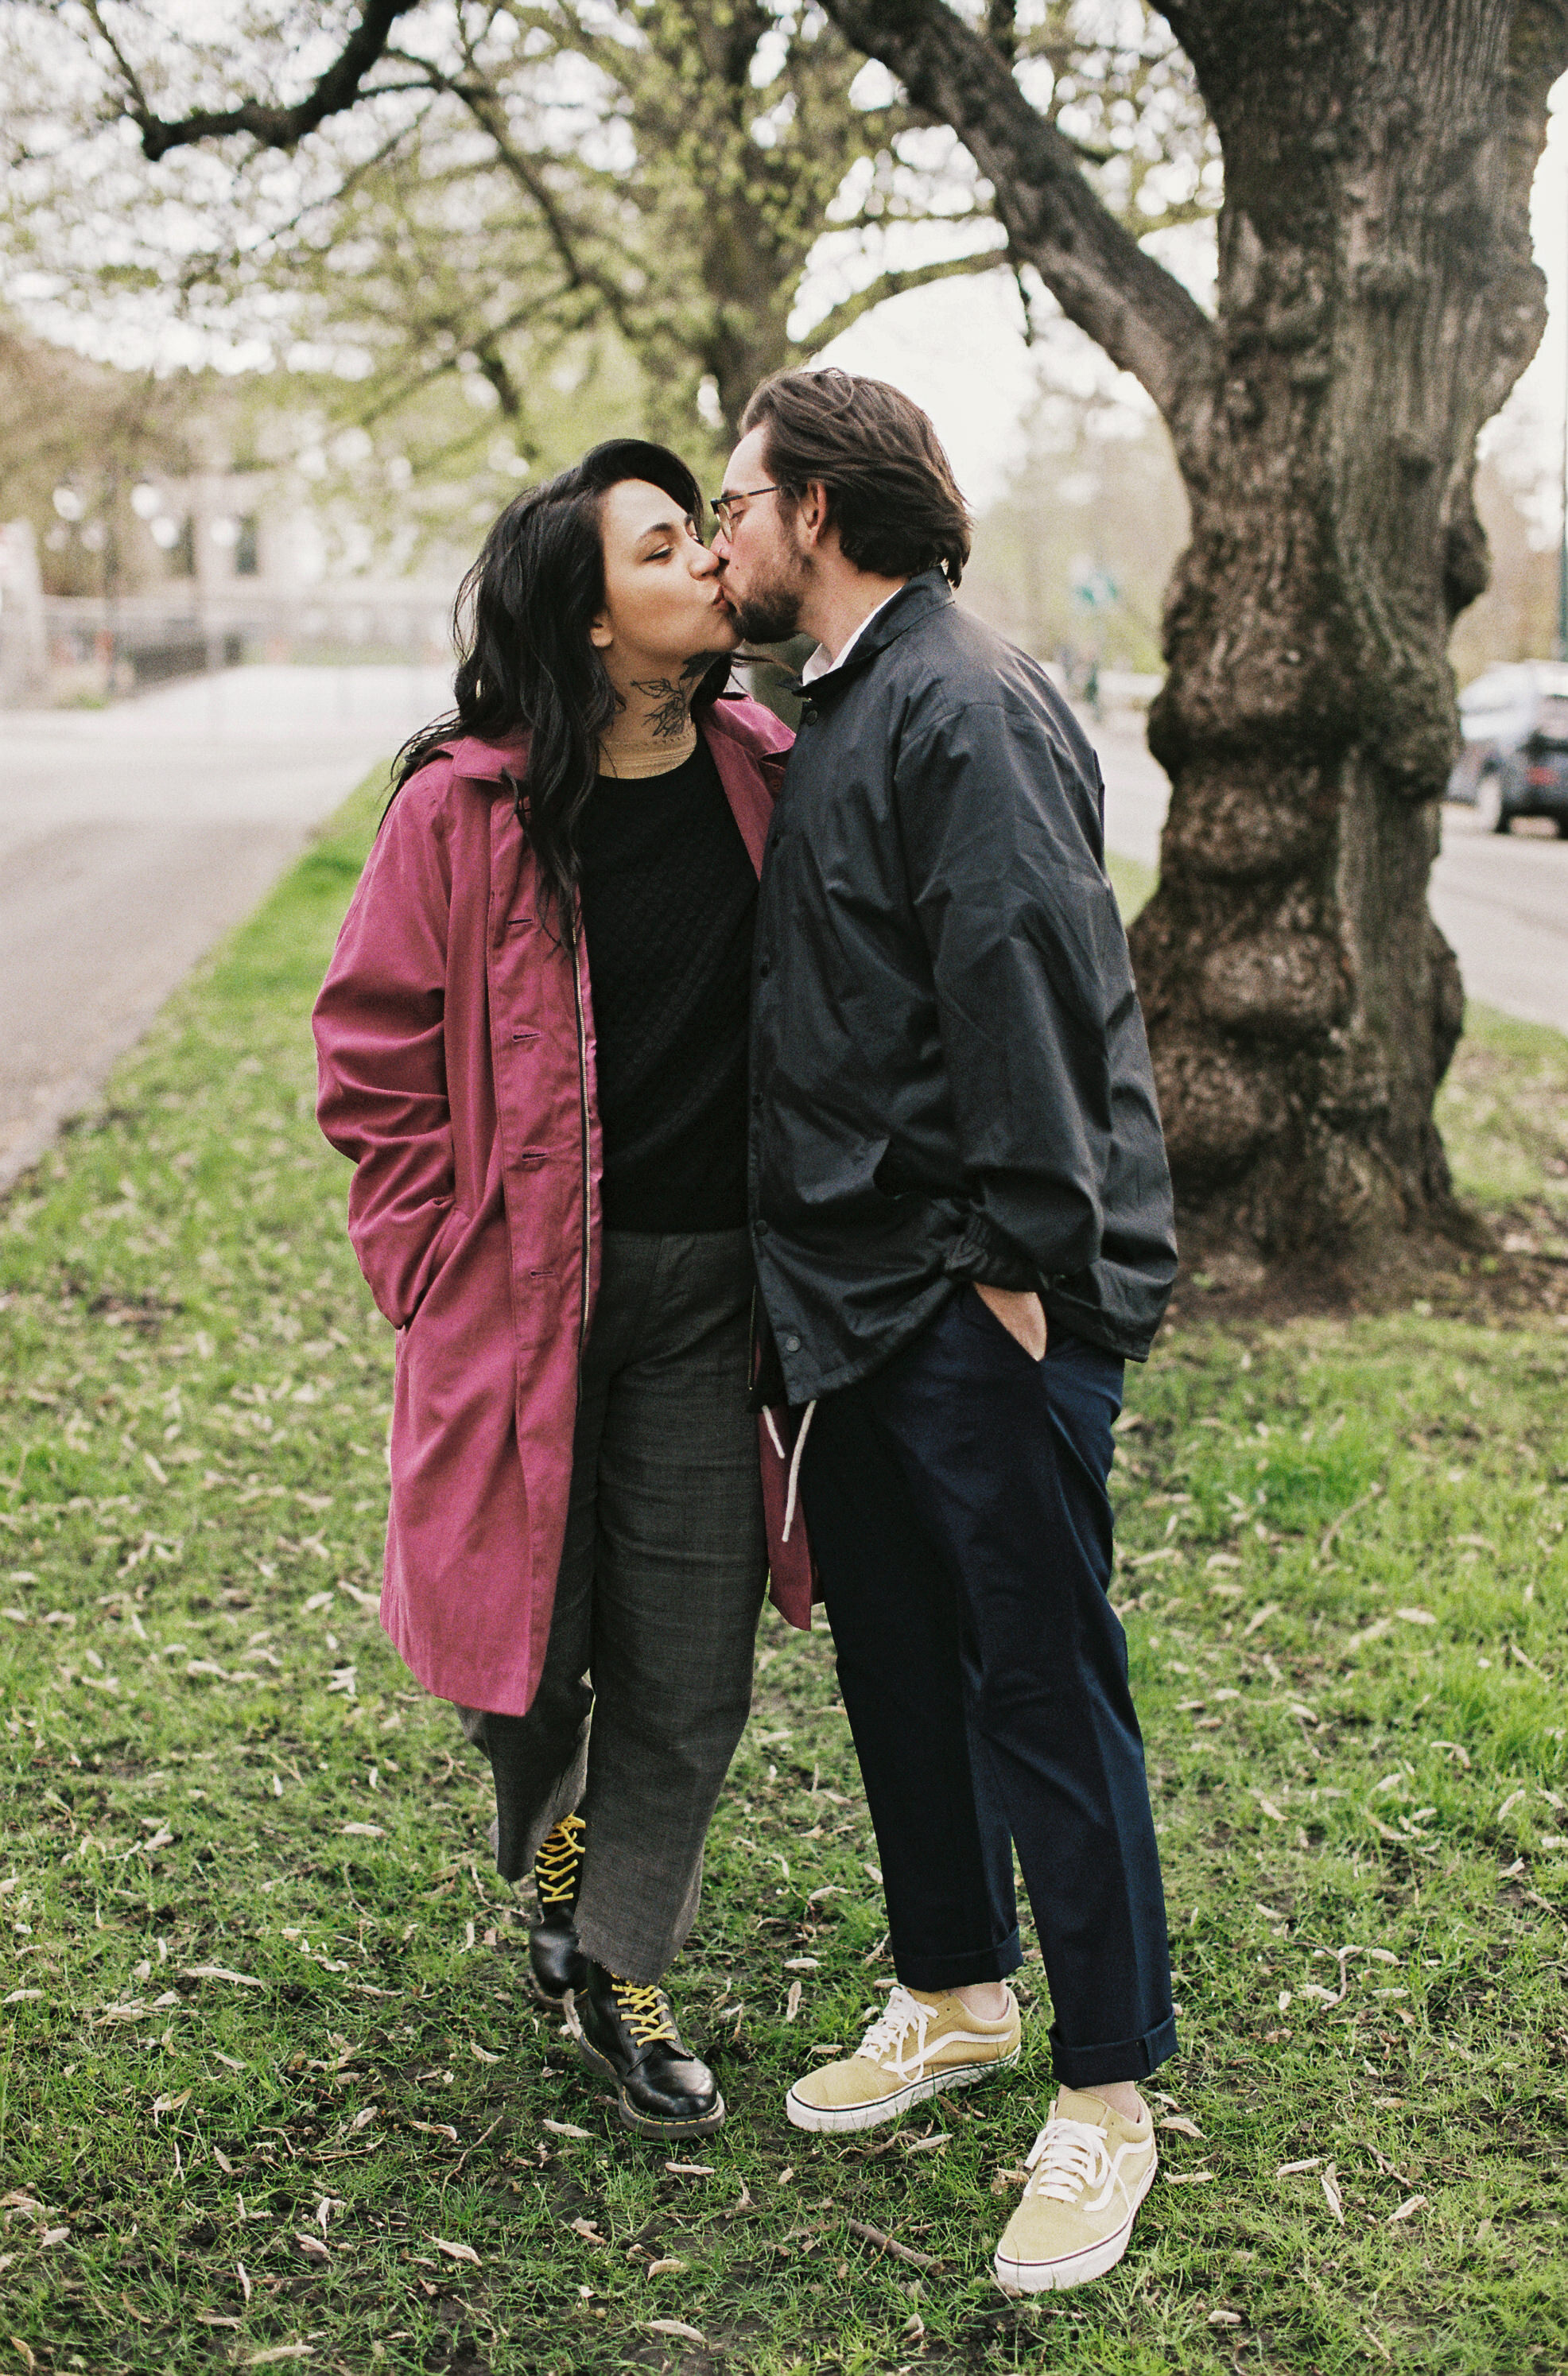 Kate-Brandon-Engagement-2019-04-27-Alycia-Lovell-Photography-46.JPG